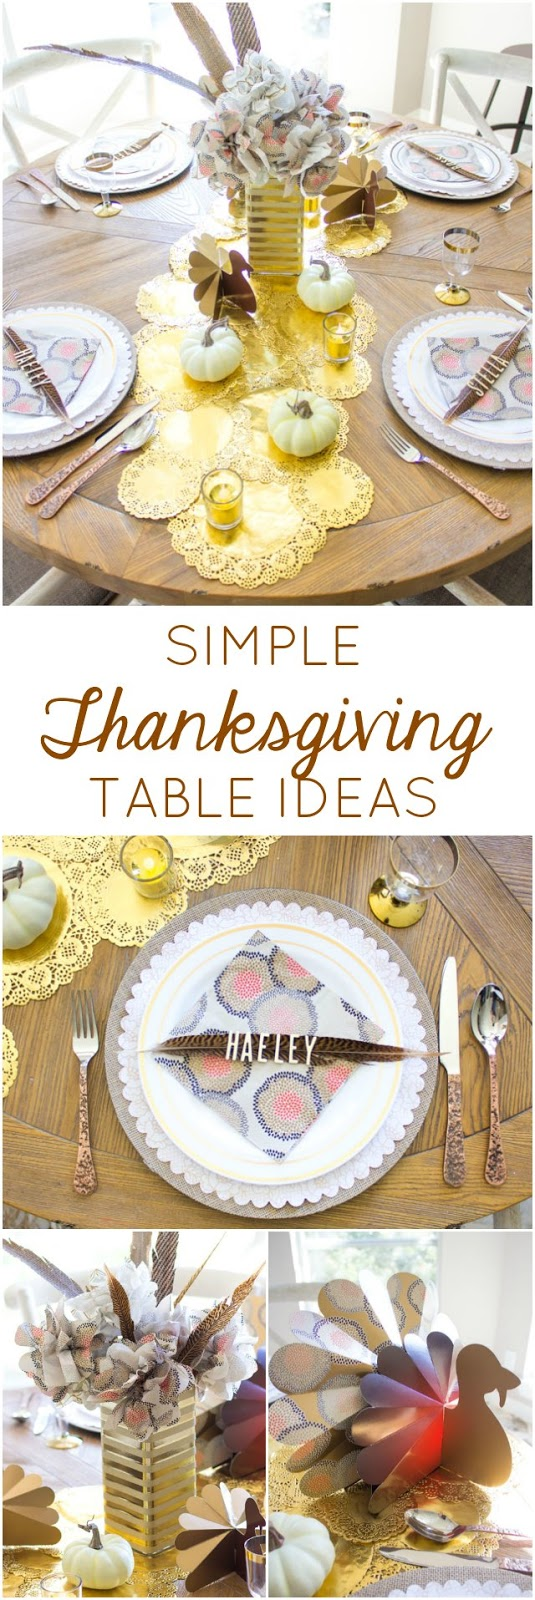 Check out these simple and elegant Thanksgiving table ideas!